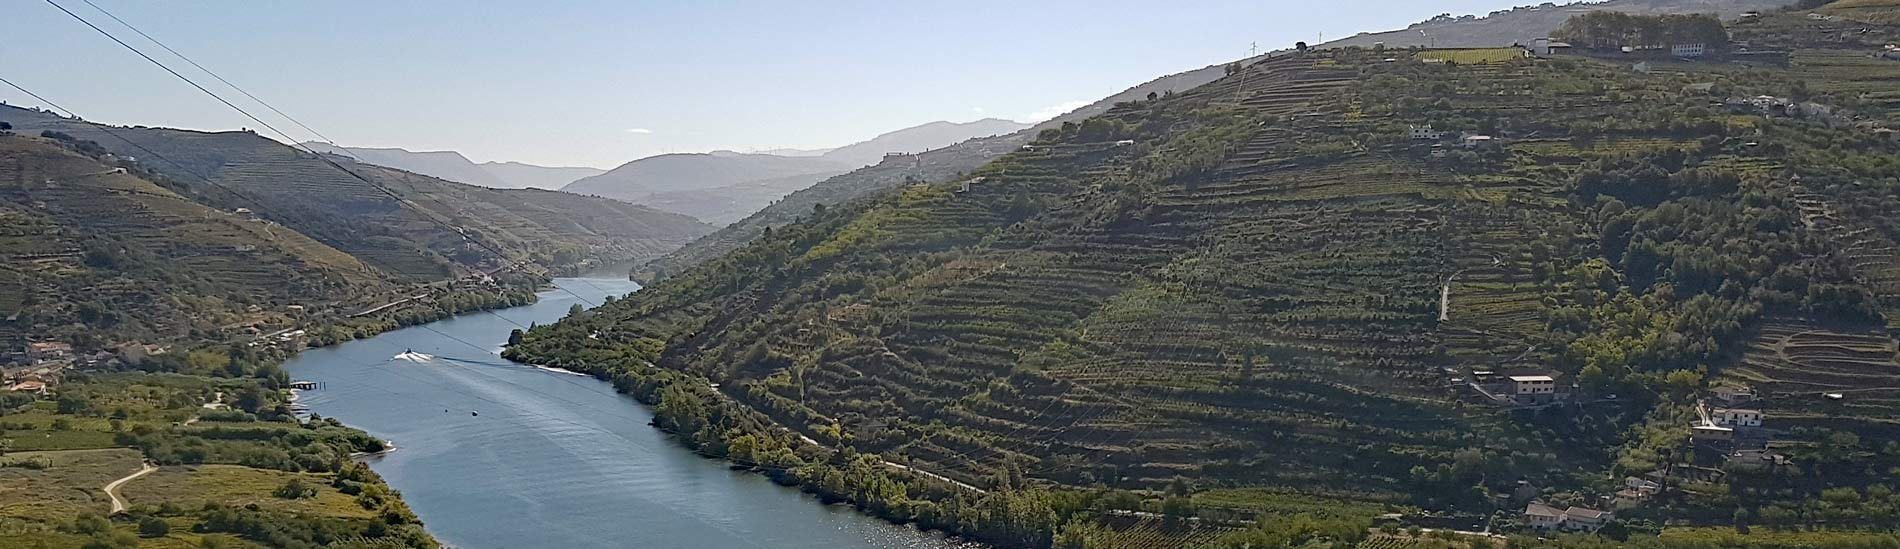 @savoredjourneys's cover photo for 'Exploring the Douro Valley Wine Region of Portugal | Savored Journeys'